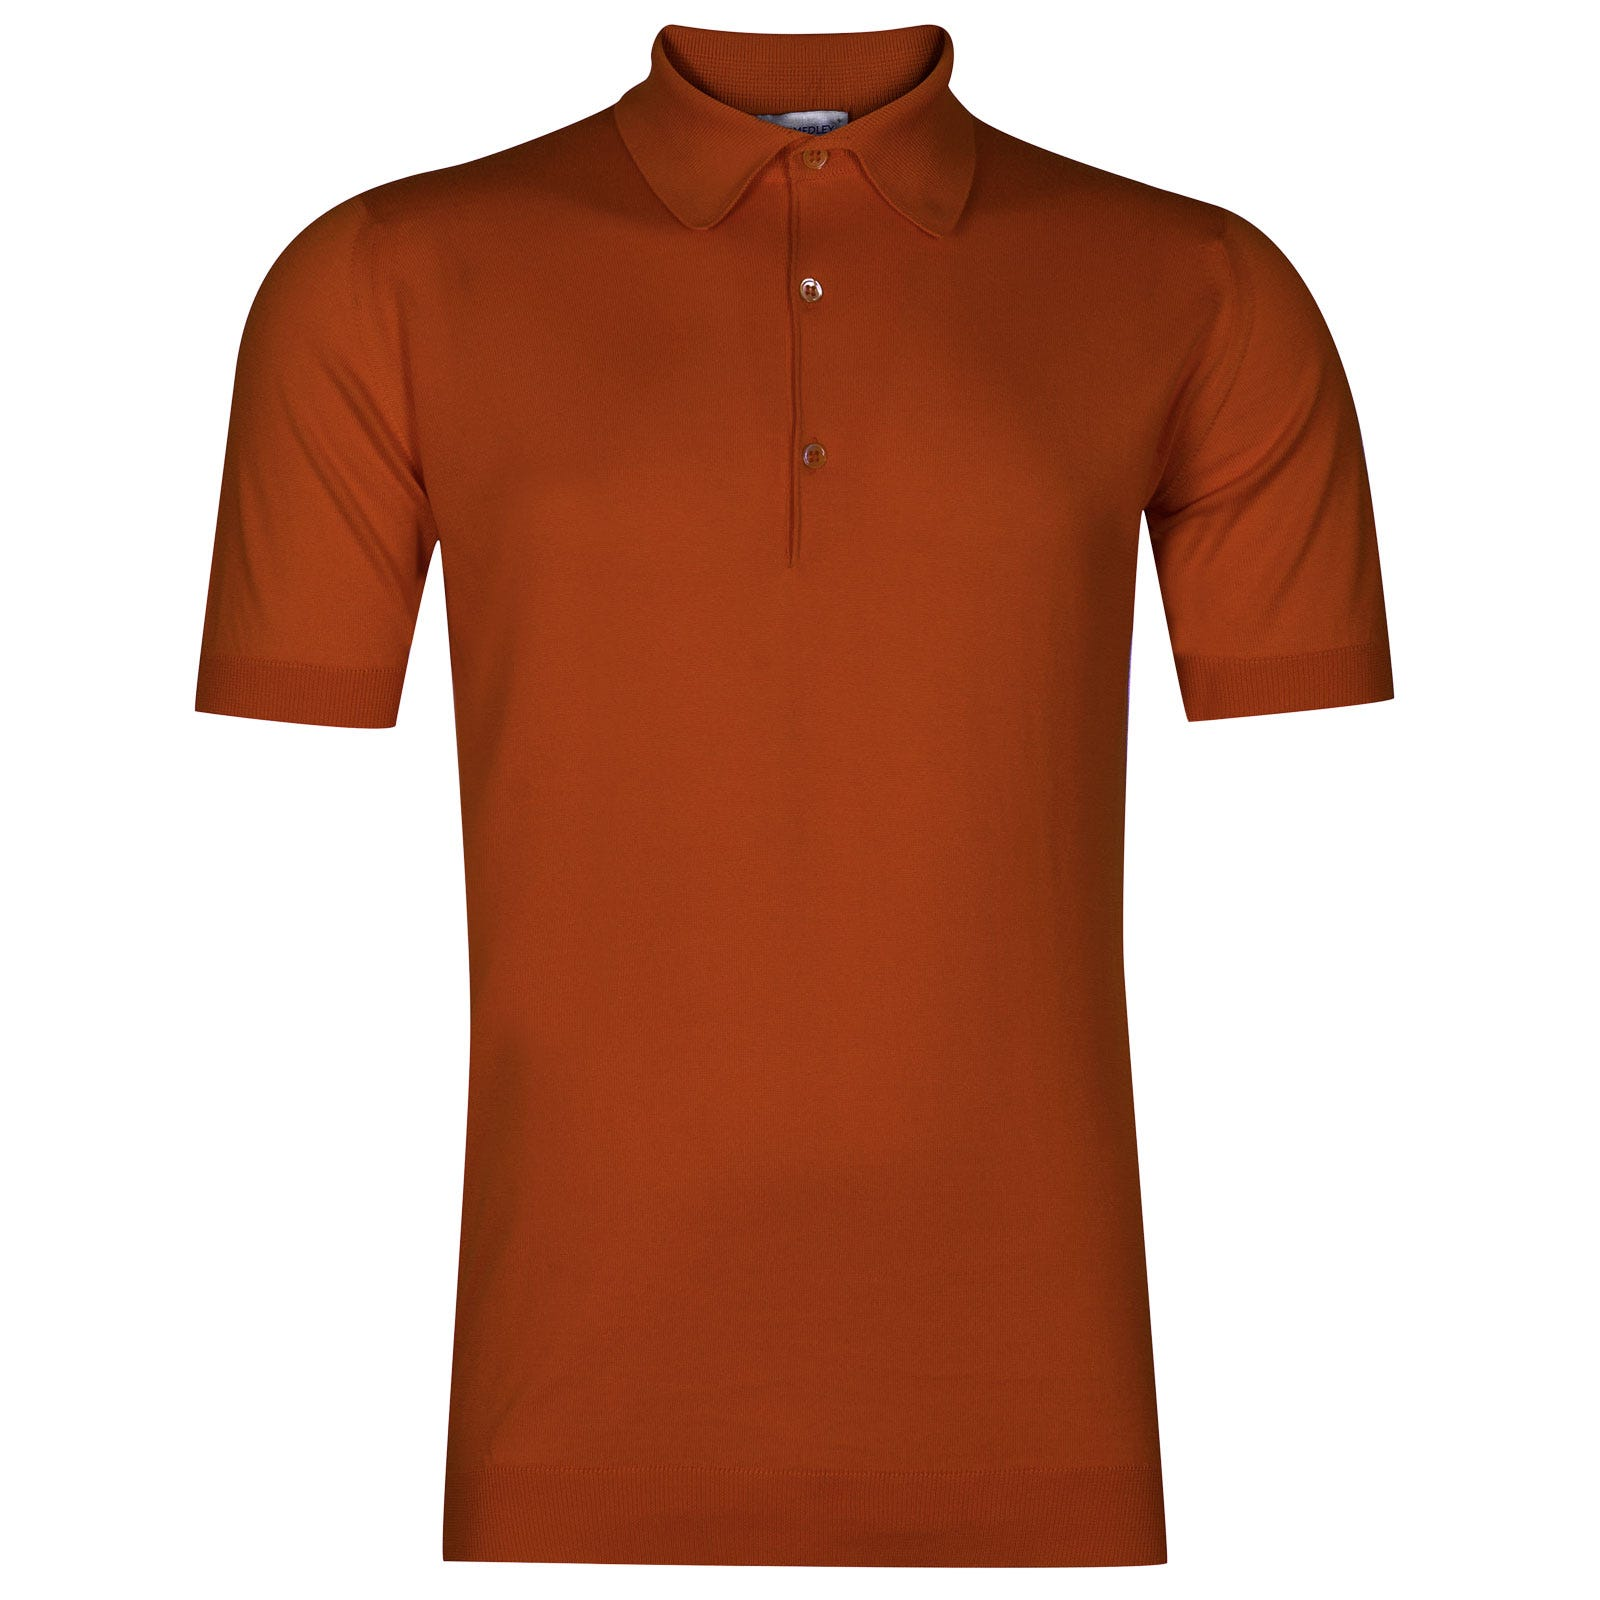 John Smedley adrian Sea Island Cotton Shirt in Flare Orange-M